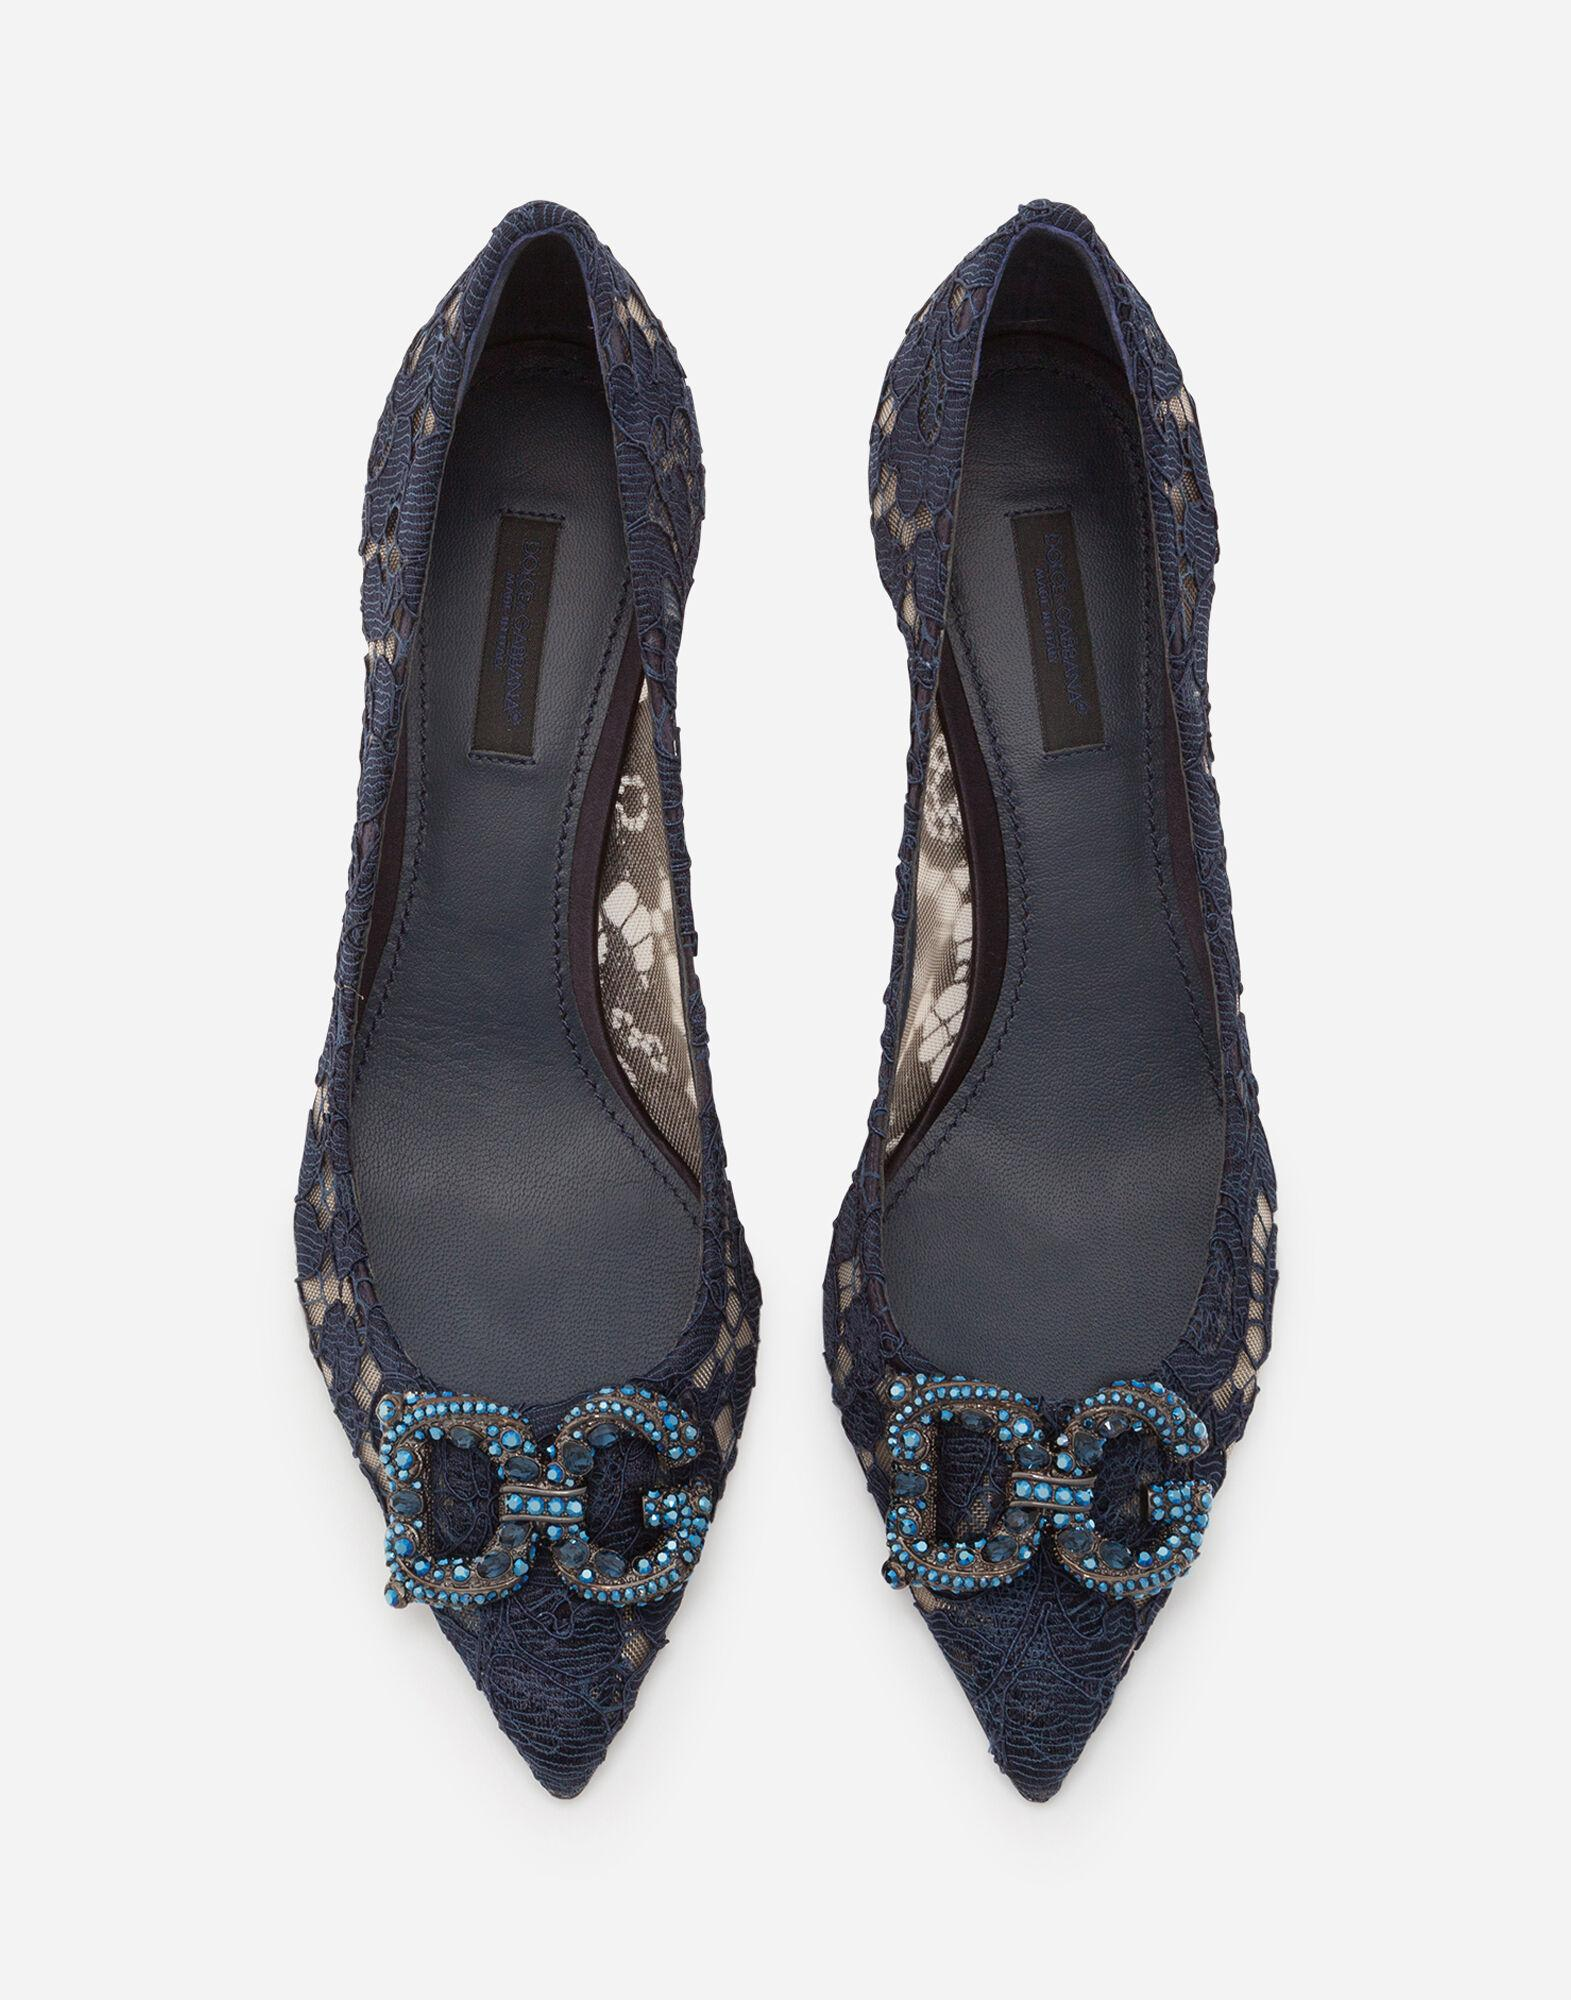 Taormina lace pumps with DG Amore logo 3